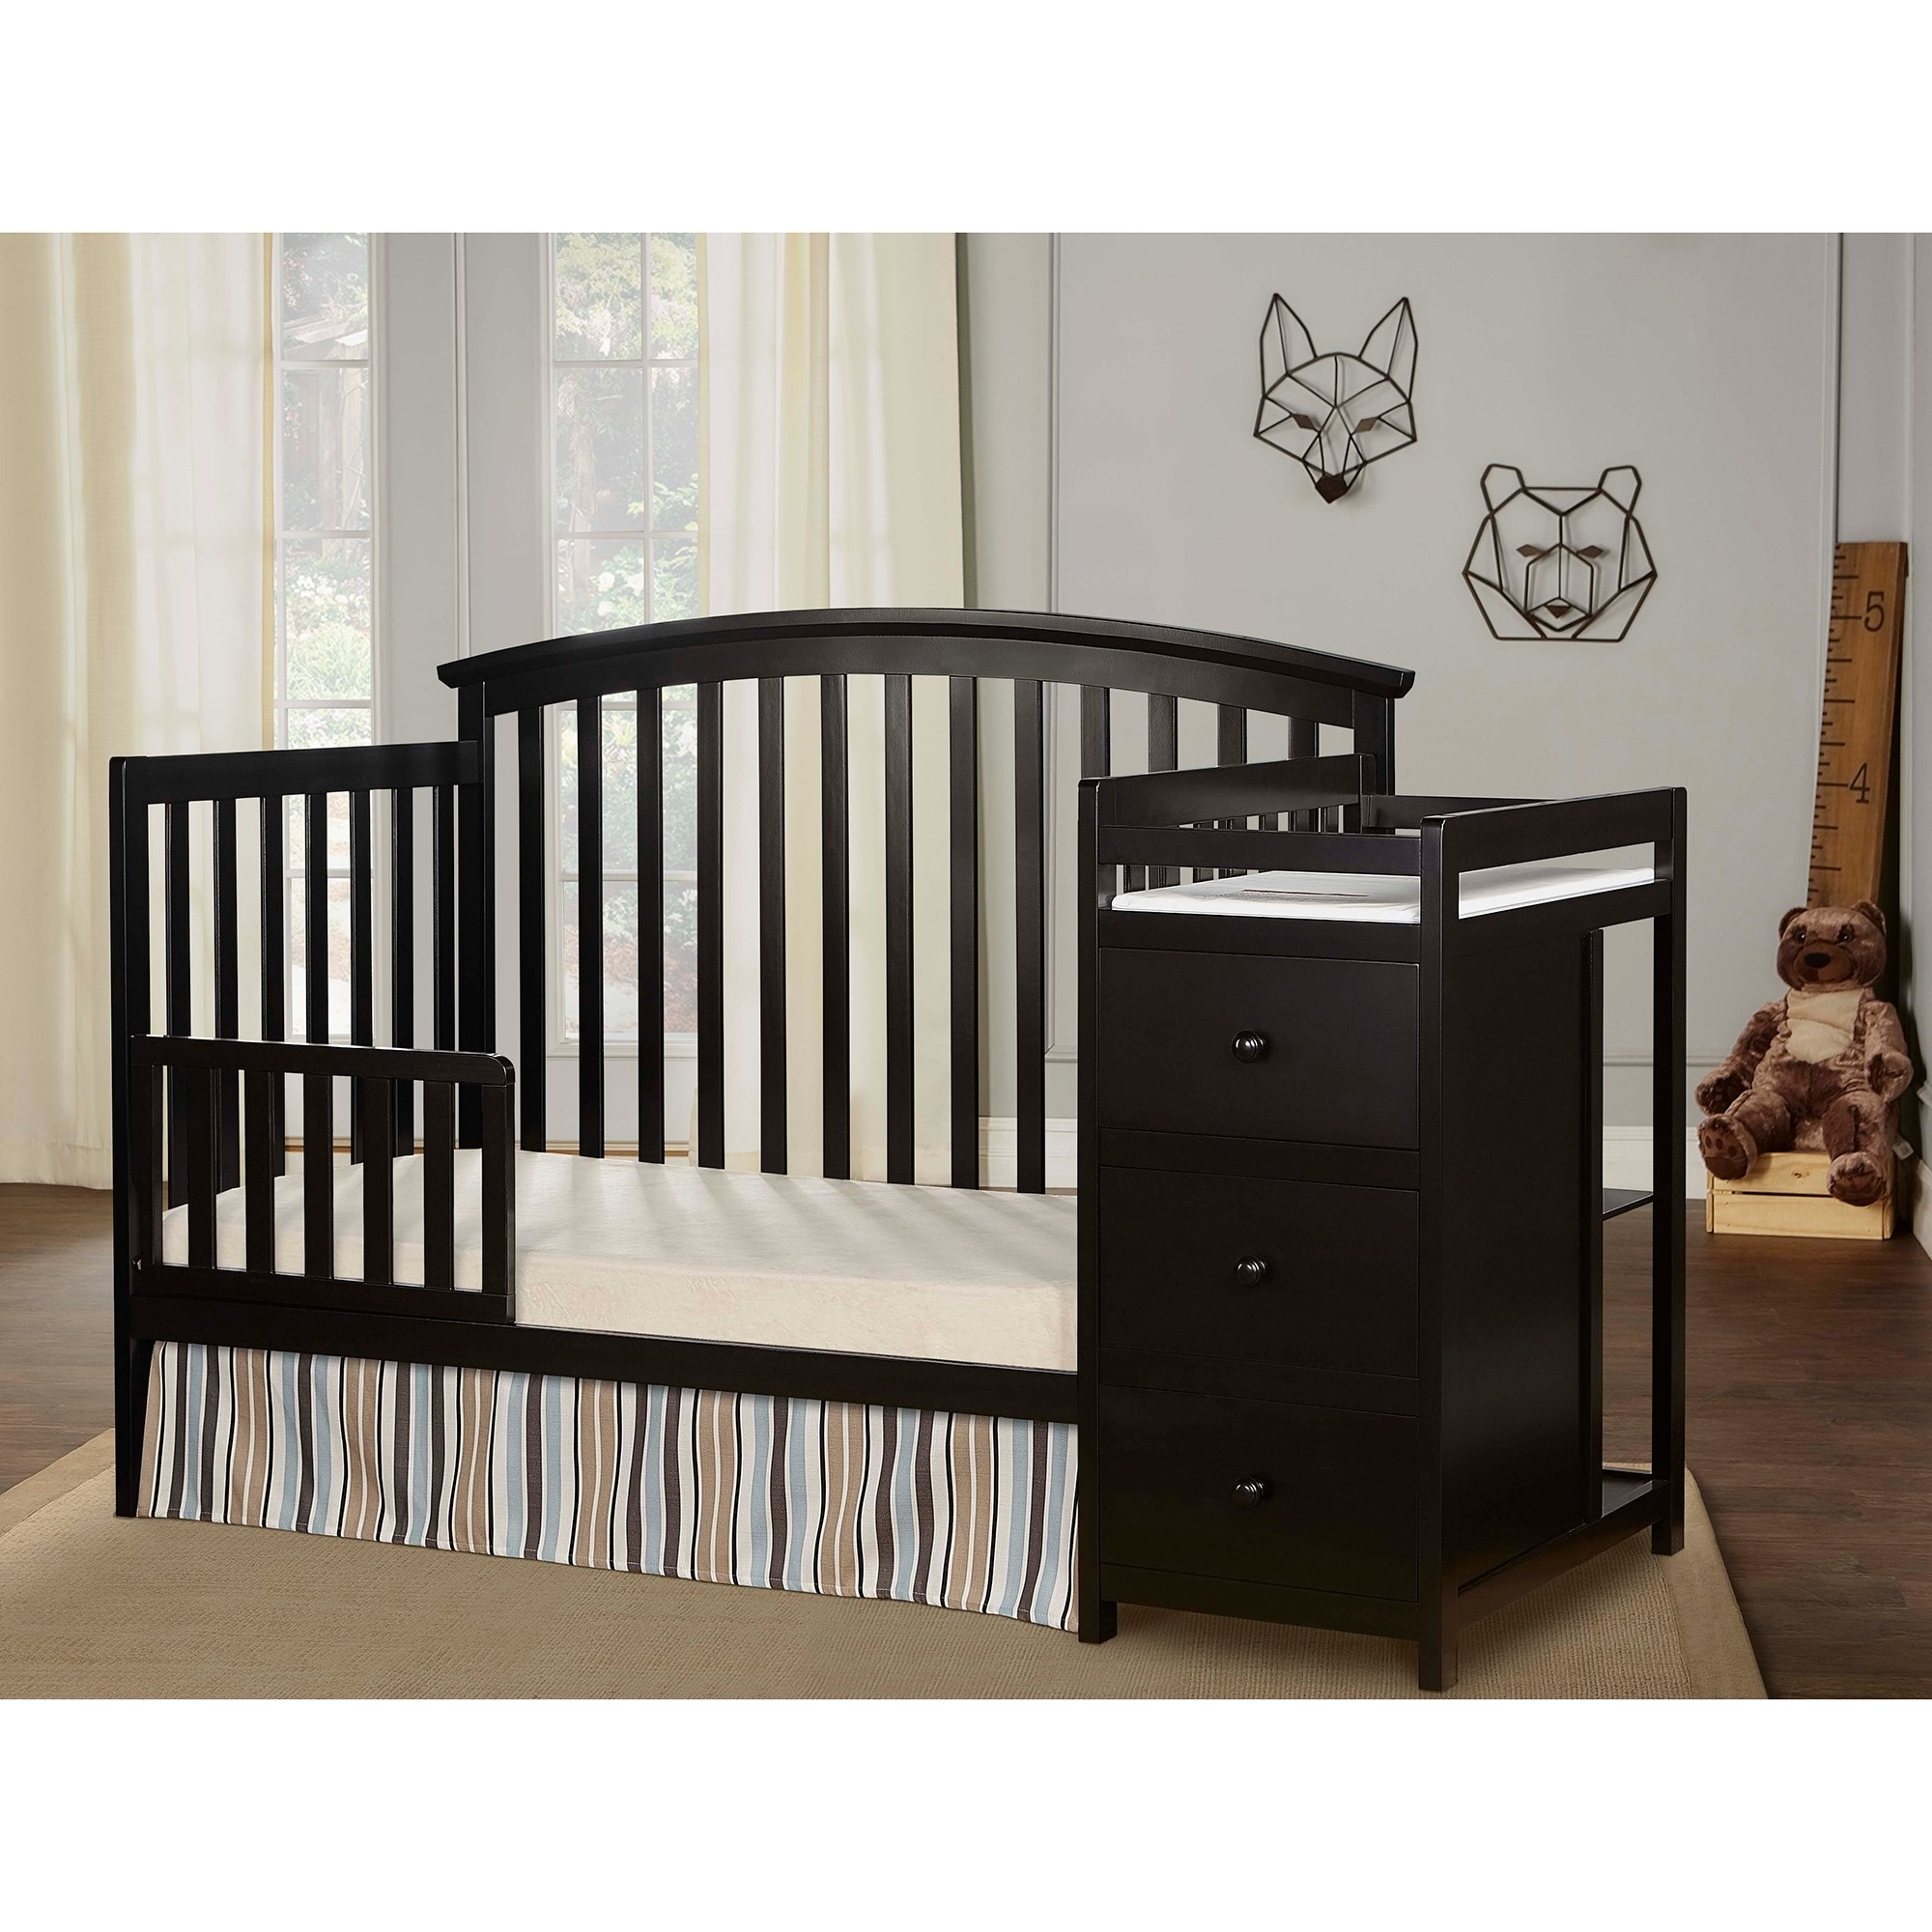 baby garden today product storage with shipping in home on overstock wood dream me s free crib convertible addison cribs